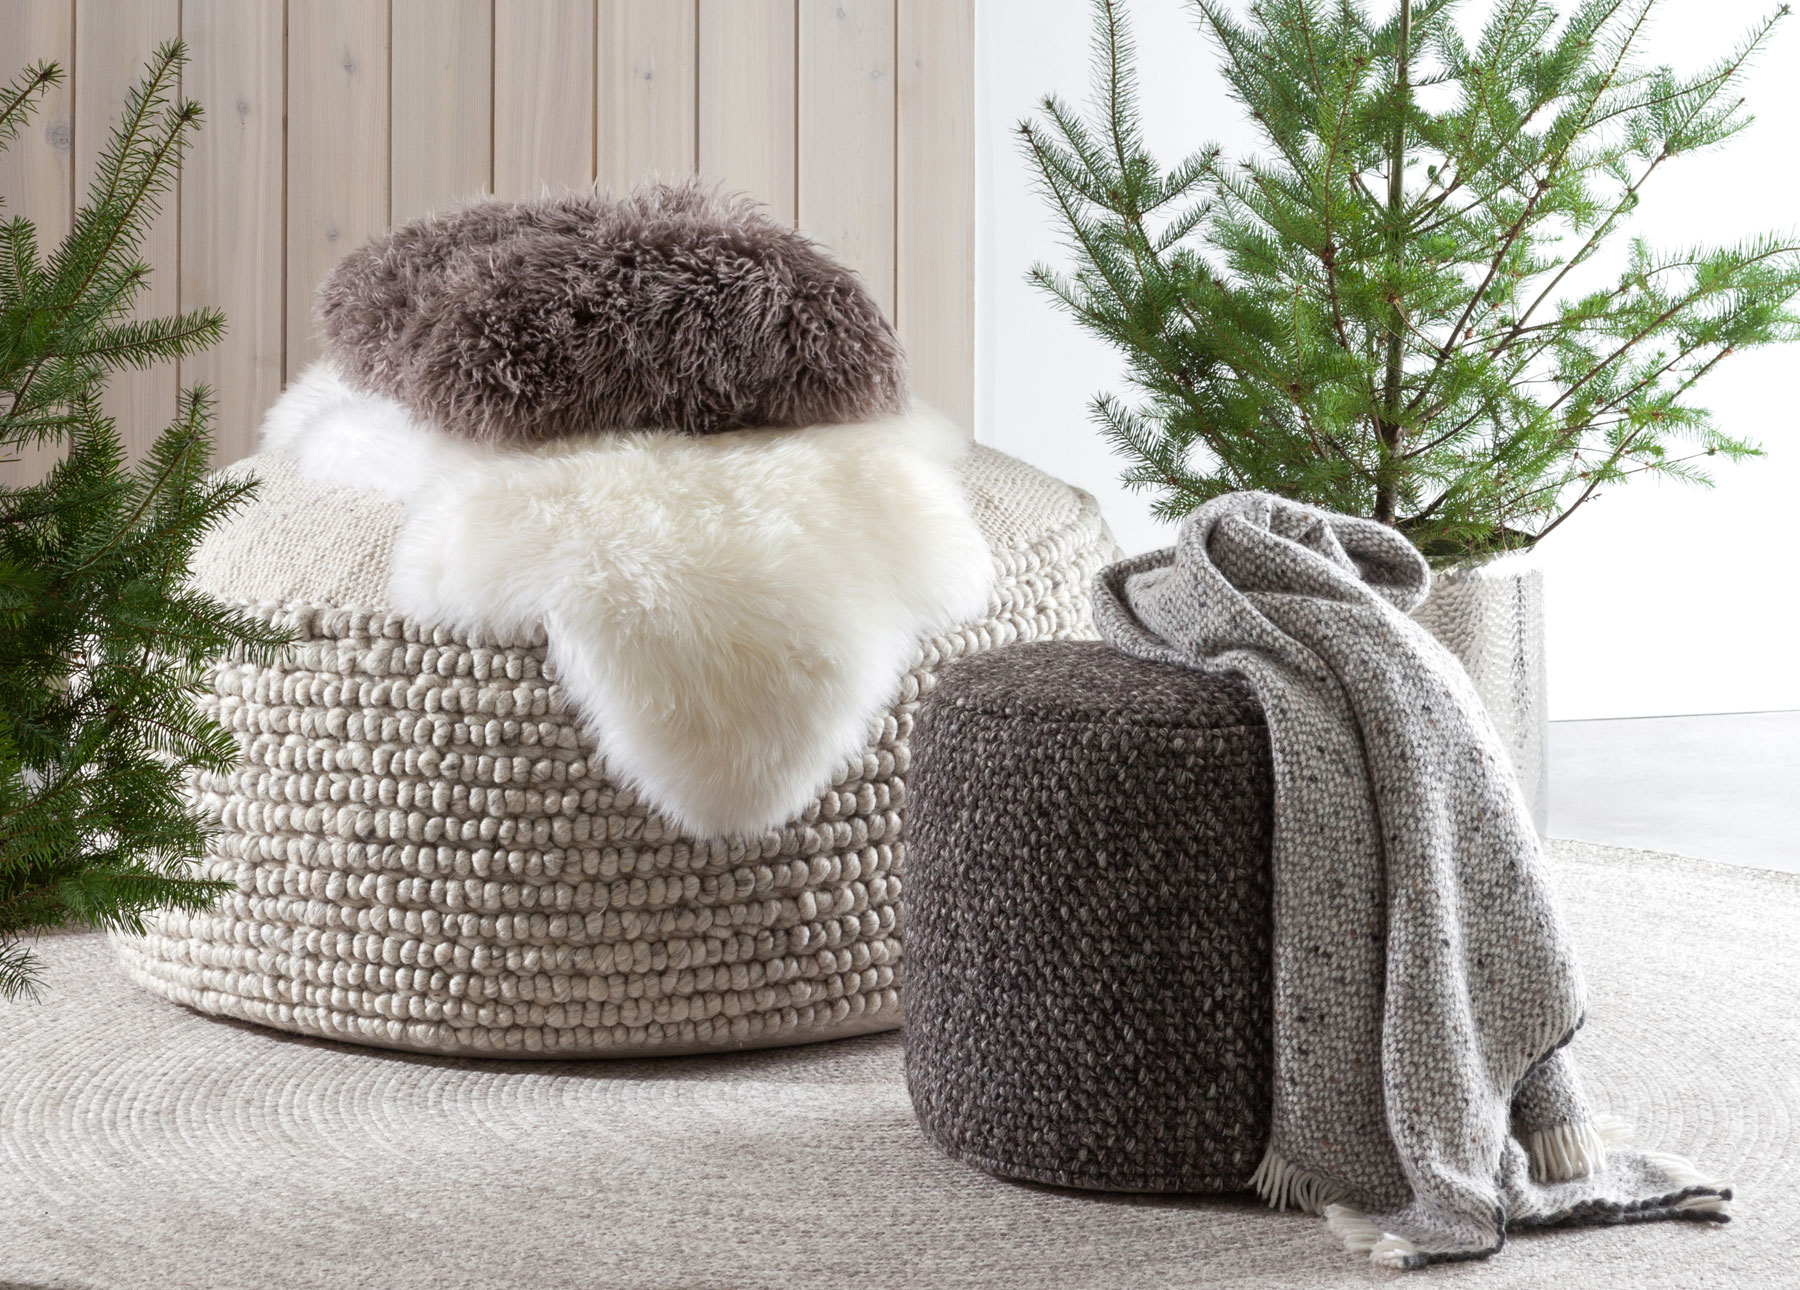 Soft textures like sheepskins, wool throws, and poufs make a living room cozy.